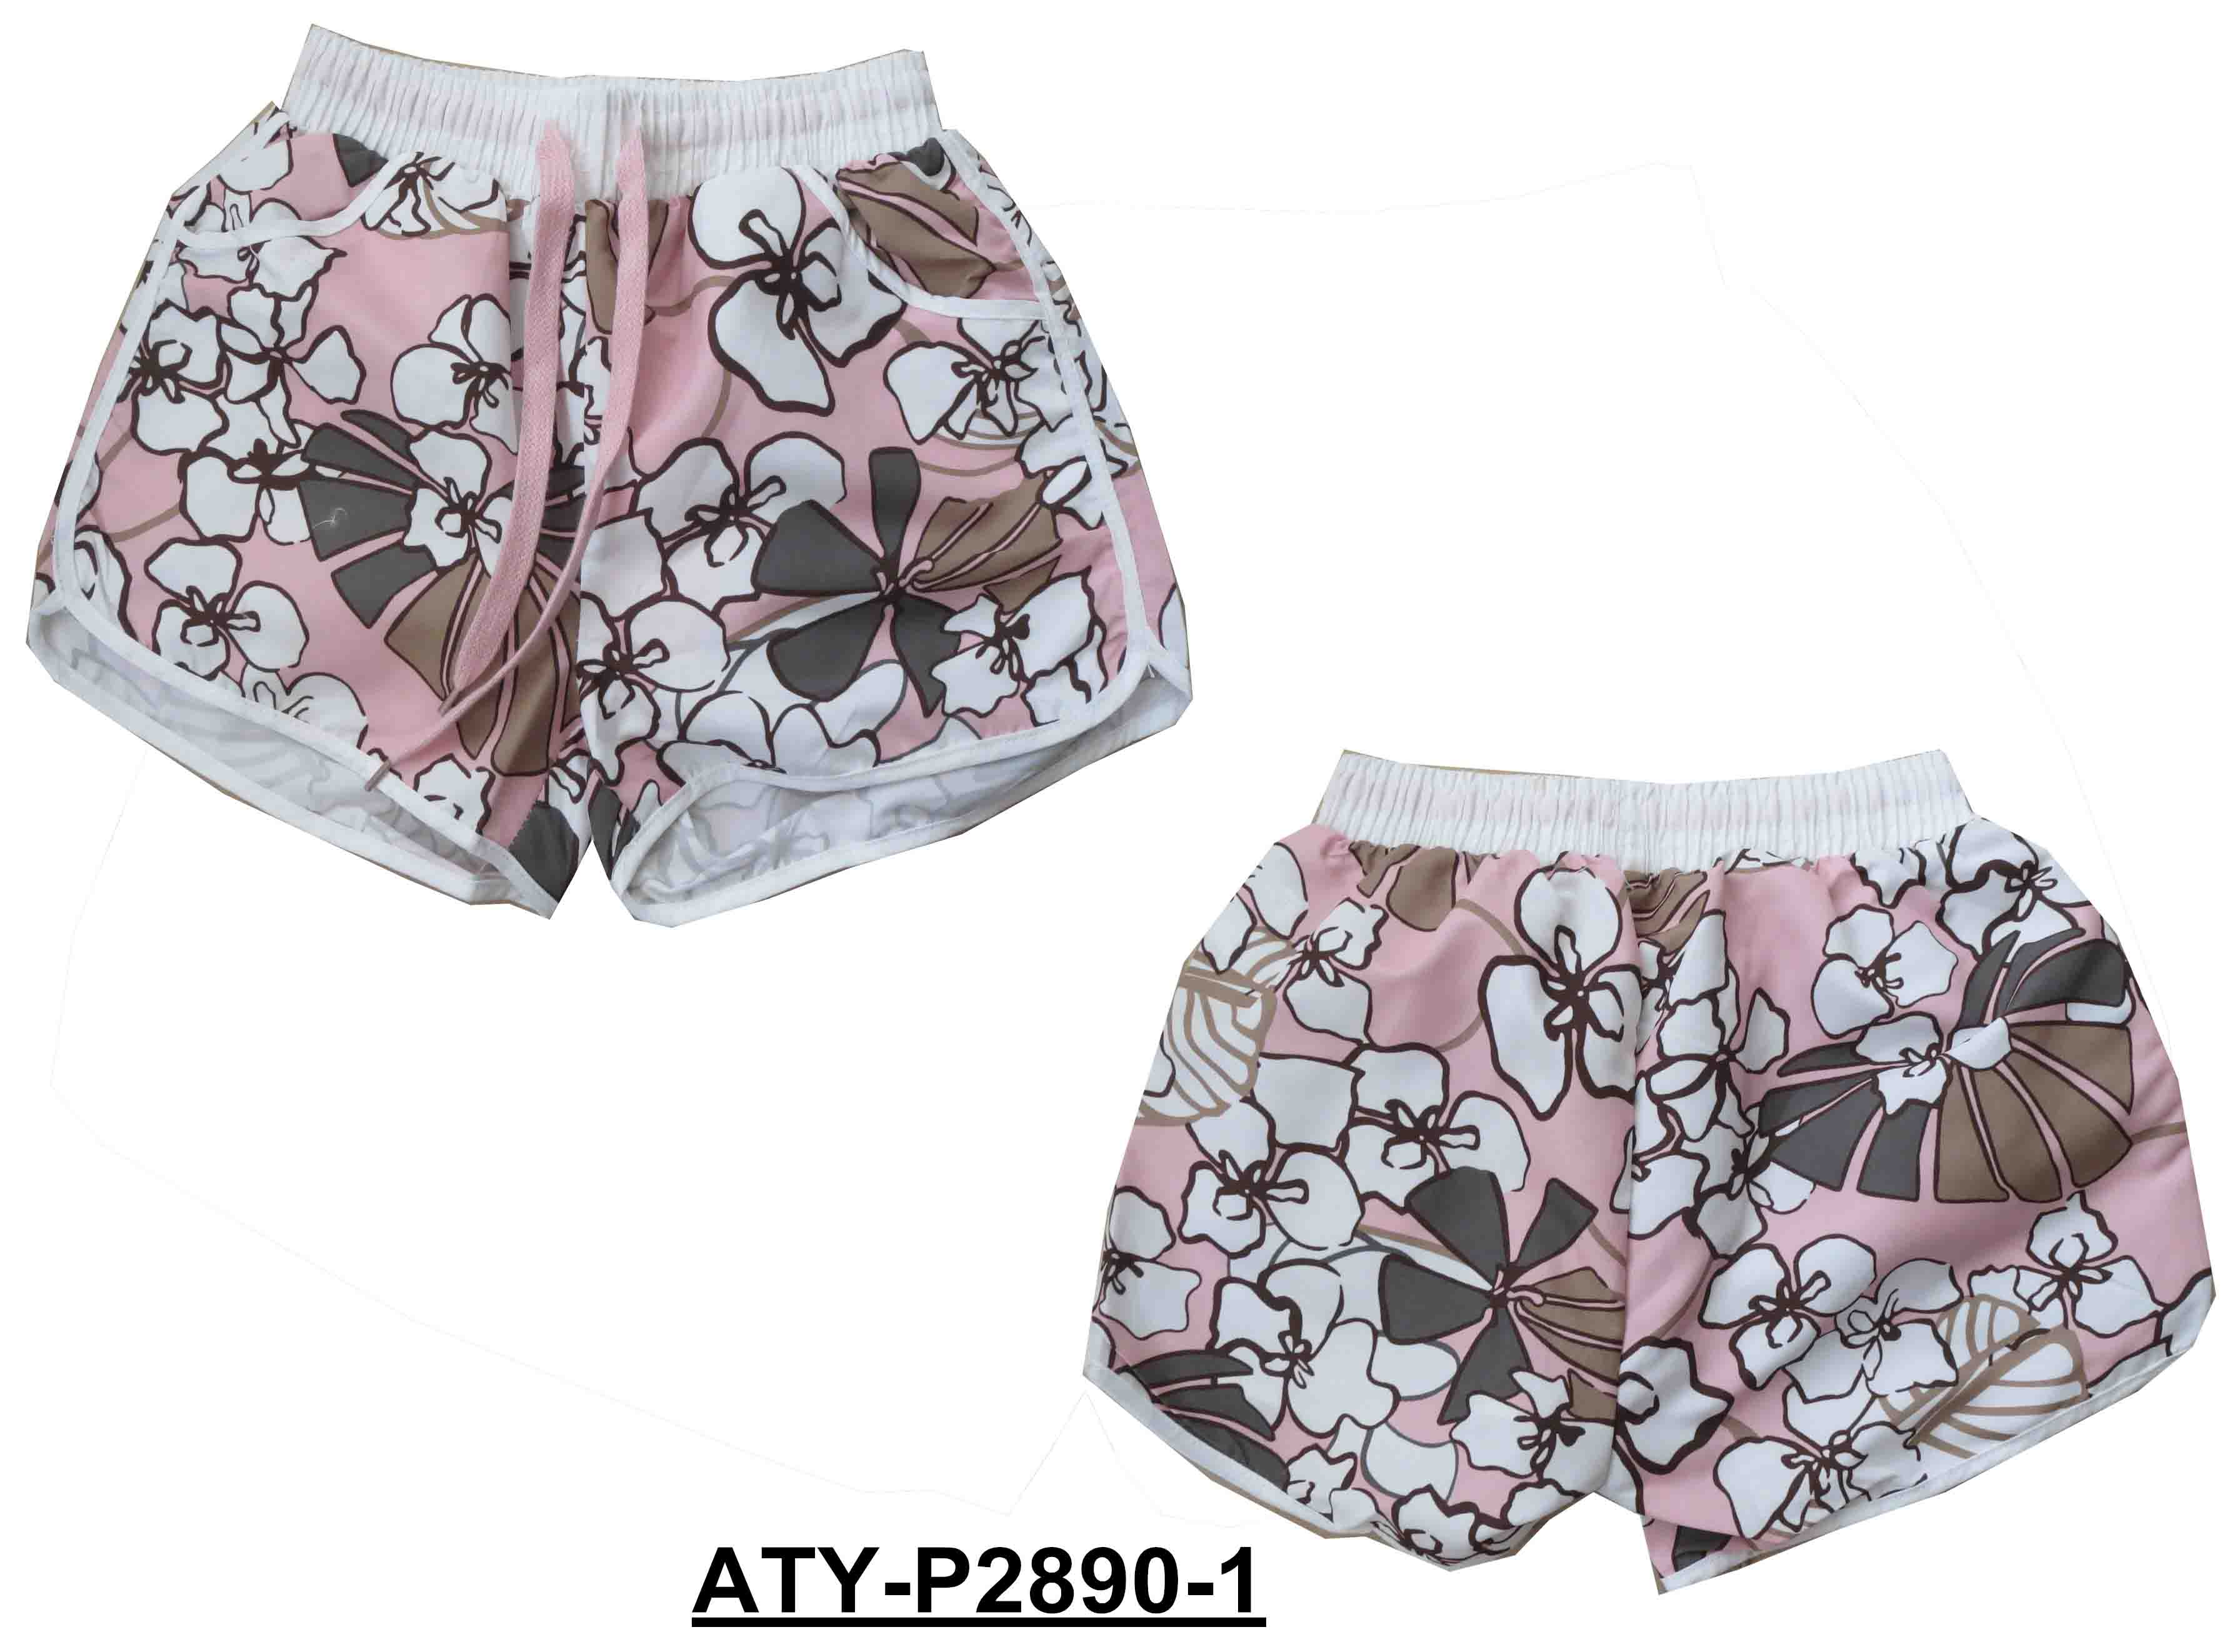 Kids girls swimming shorts, Children's wear